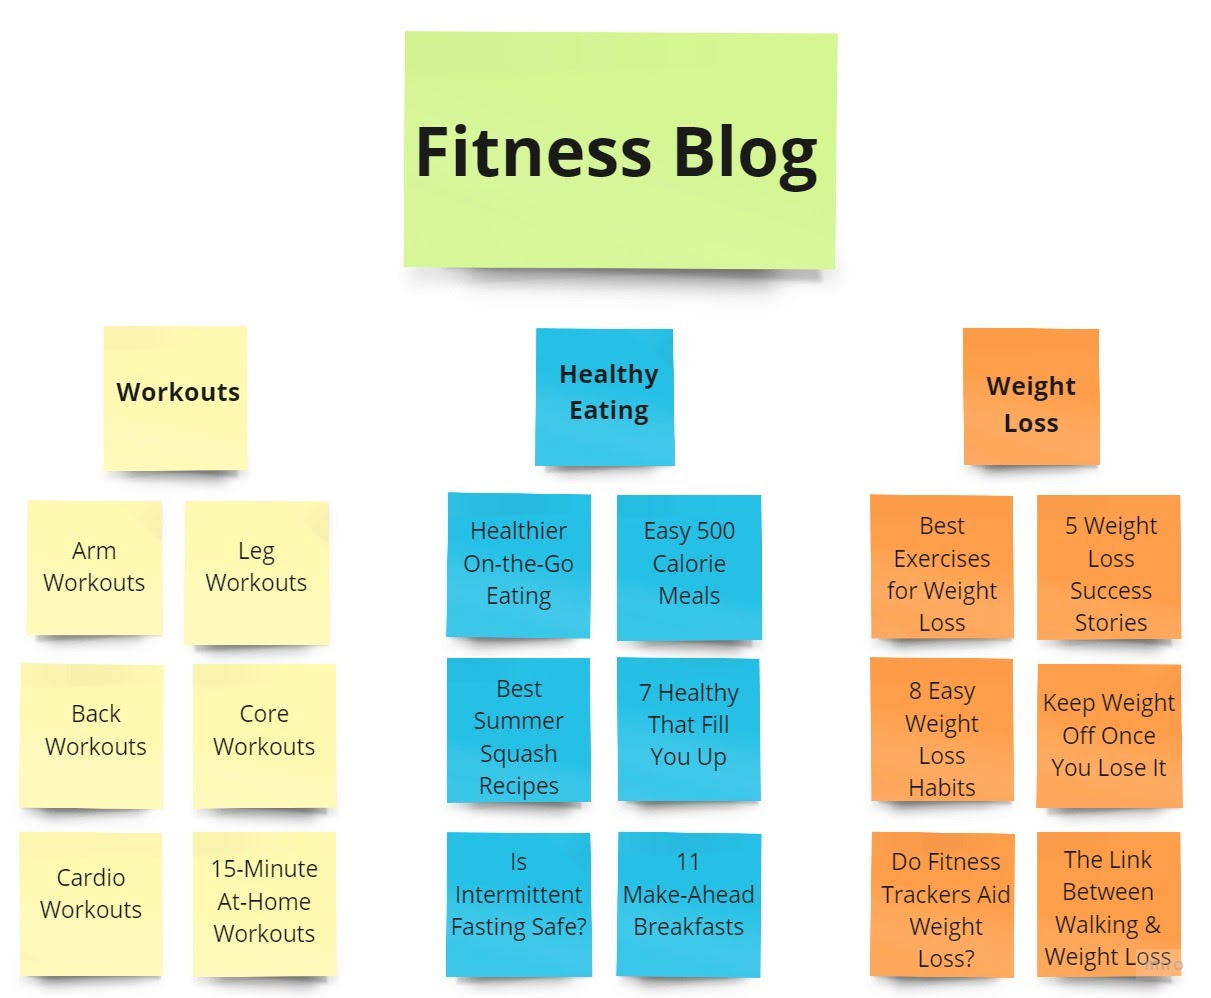 Example of content on a fitness blog